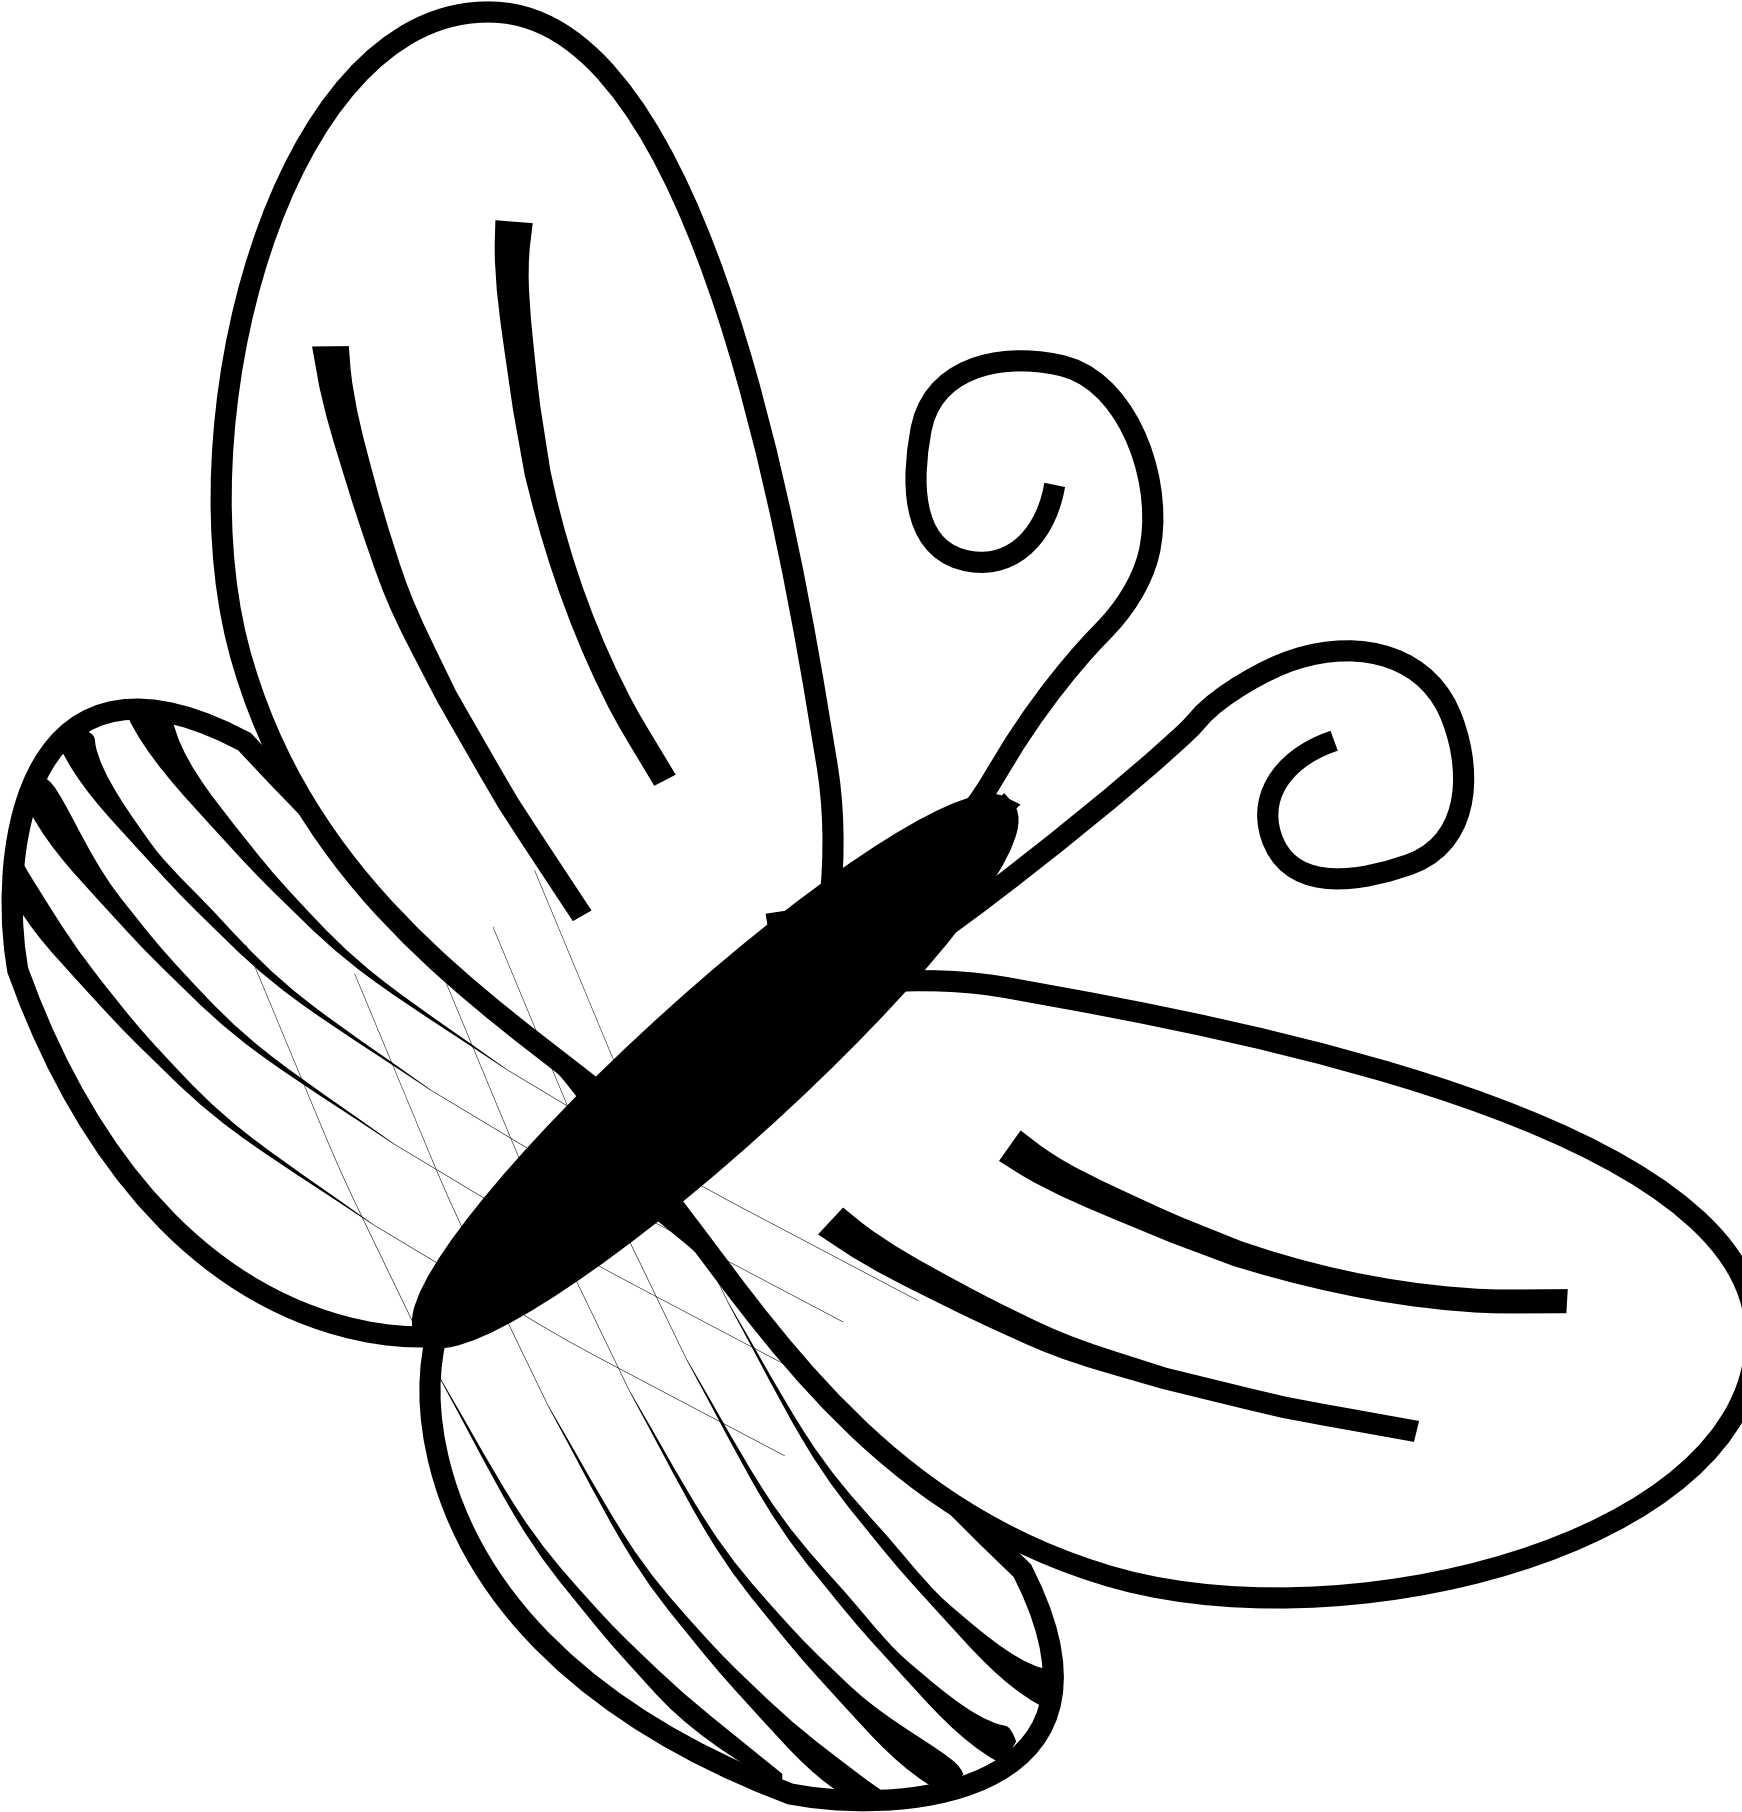 Butterflies Clipart Line Drawing 6 Butterfly Black Butterfly Images In Black And White Png Download Full Size Clipart 5204535 Pinclipart